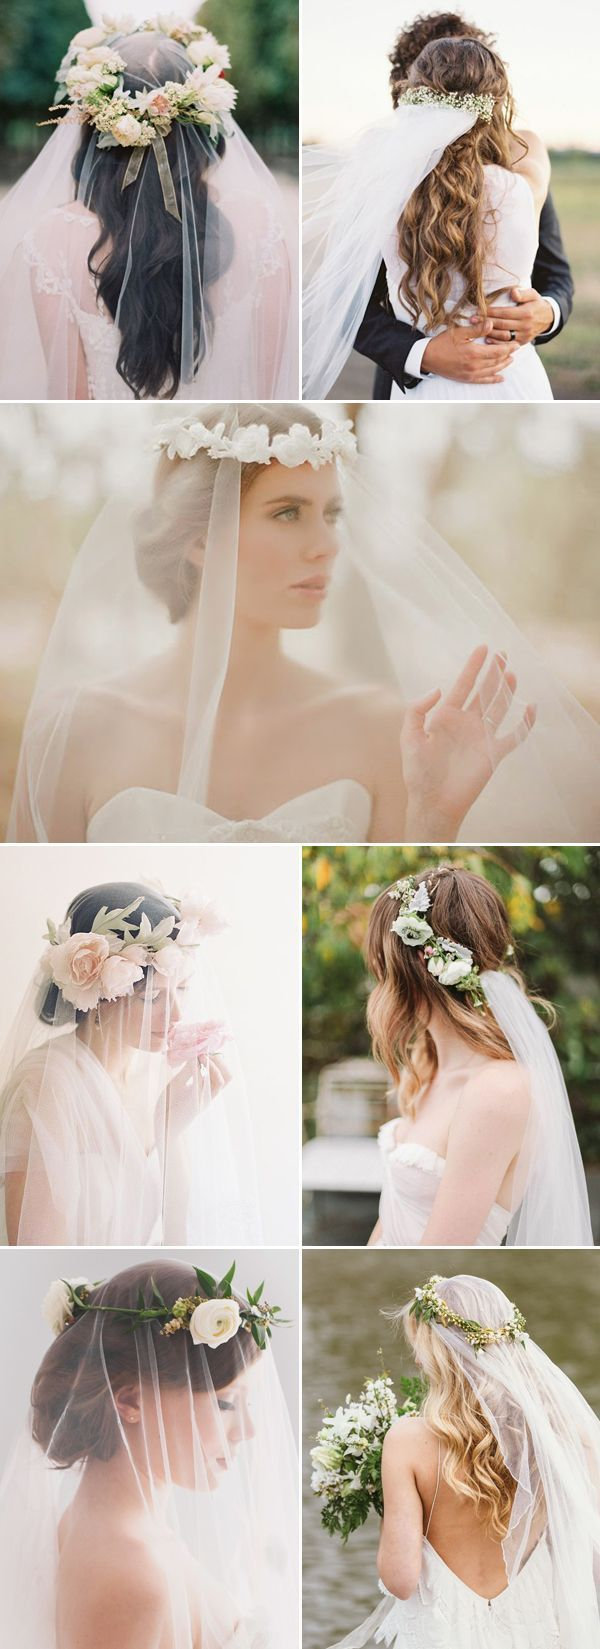 26 Bridal Hairstyles that Look Good with Veils! - Flower crown! | thebeautyspotqld.com.au